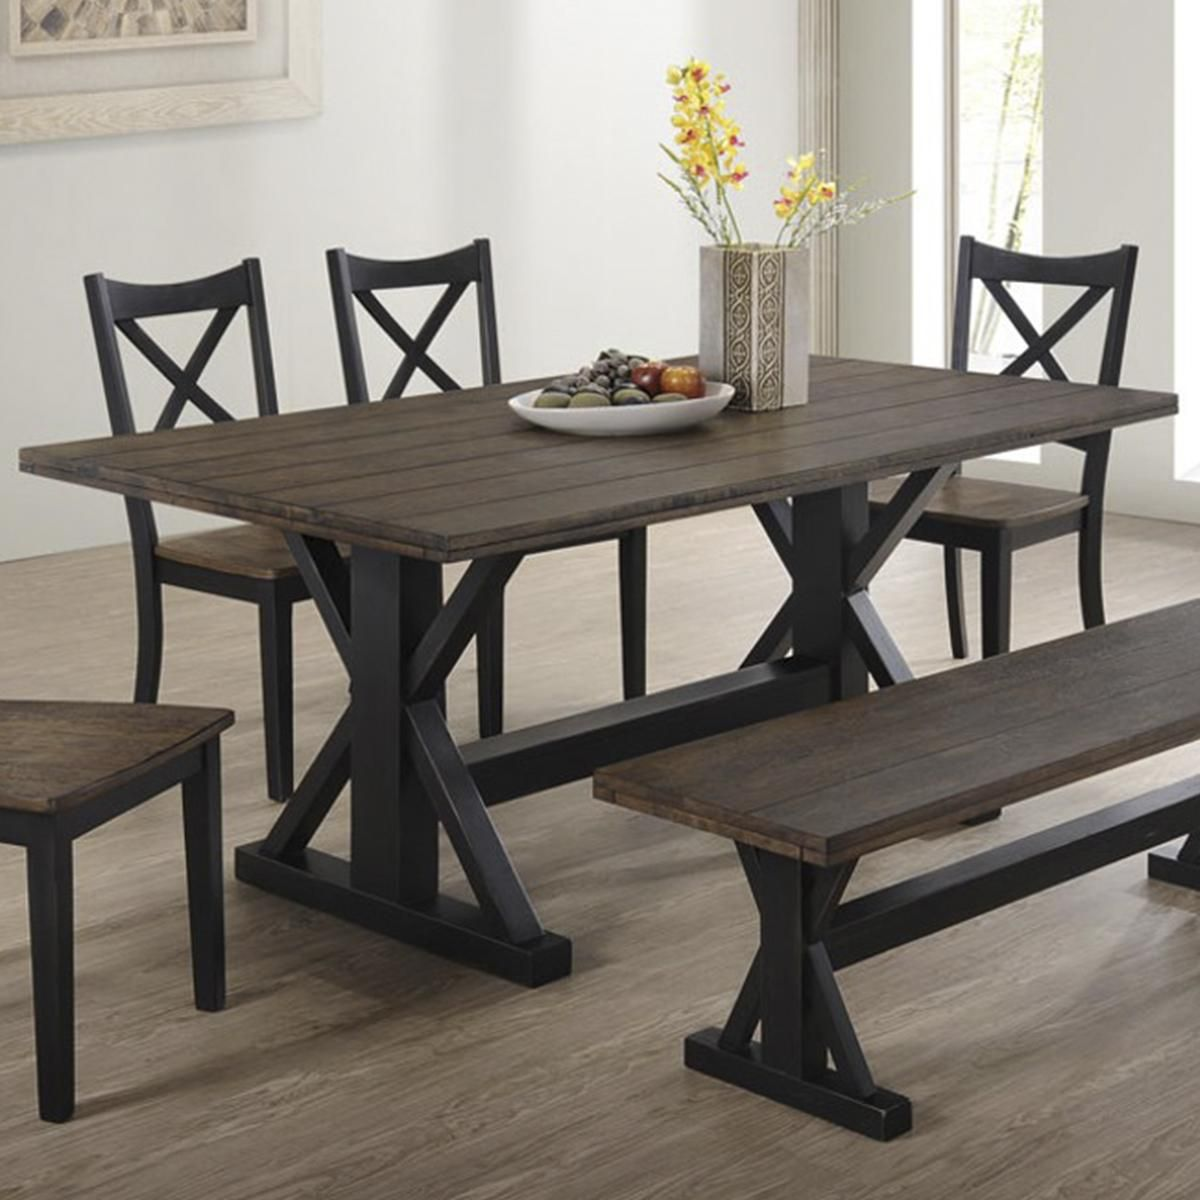 Simmons Upholstery Lexington Dining Table In Black And Rustic Oak